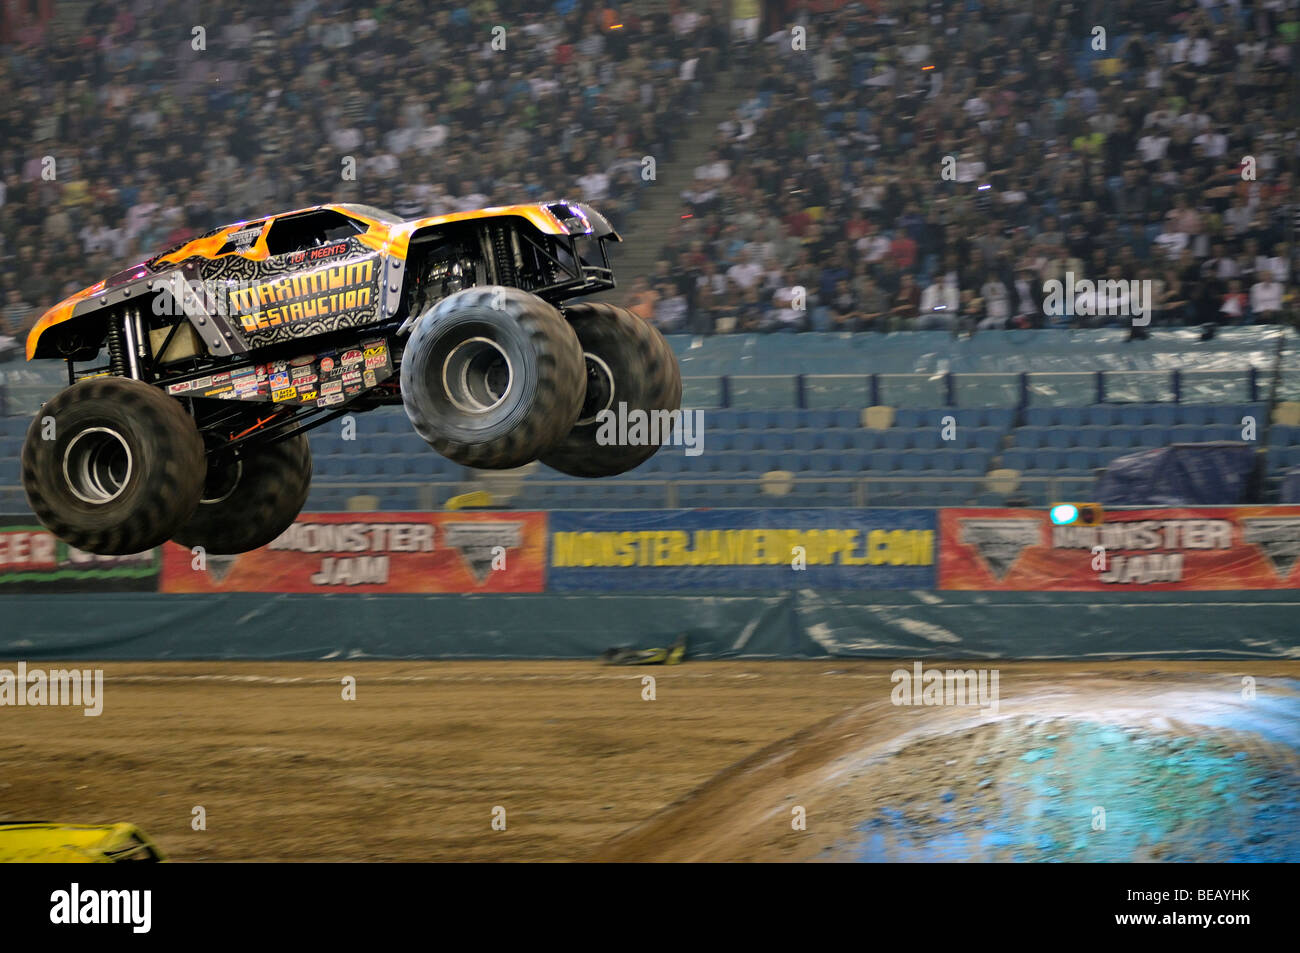 Monster Jam Maximum Distruction with Tom Meents Driver - Stock Image